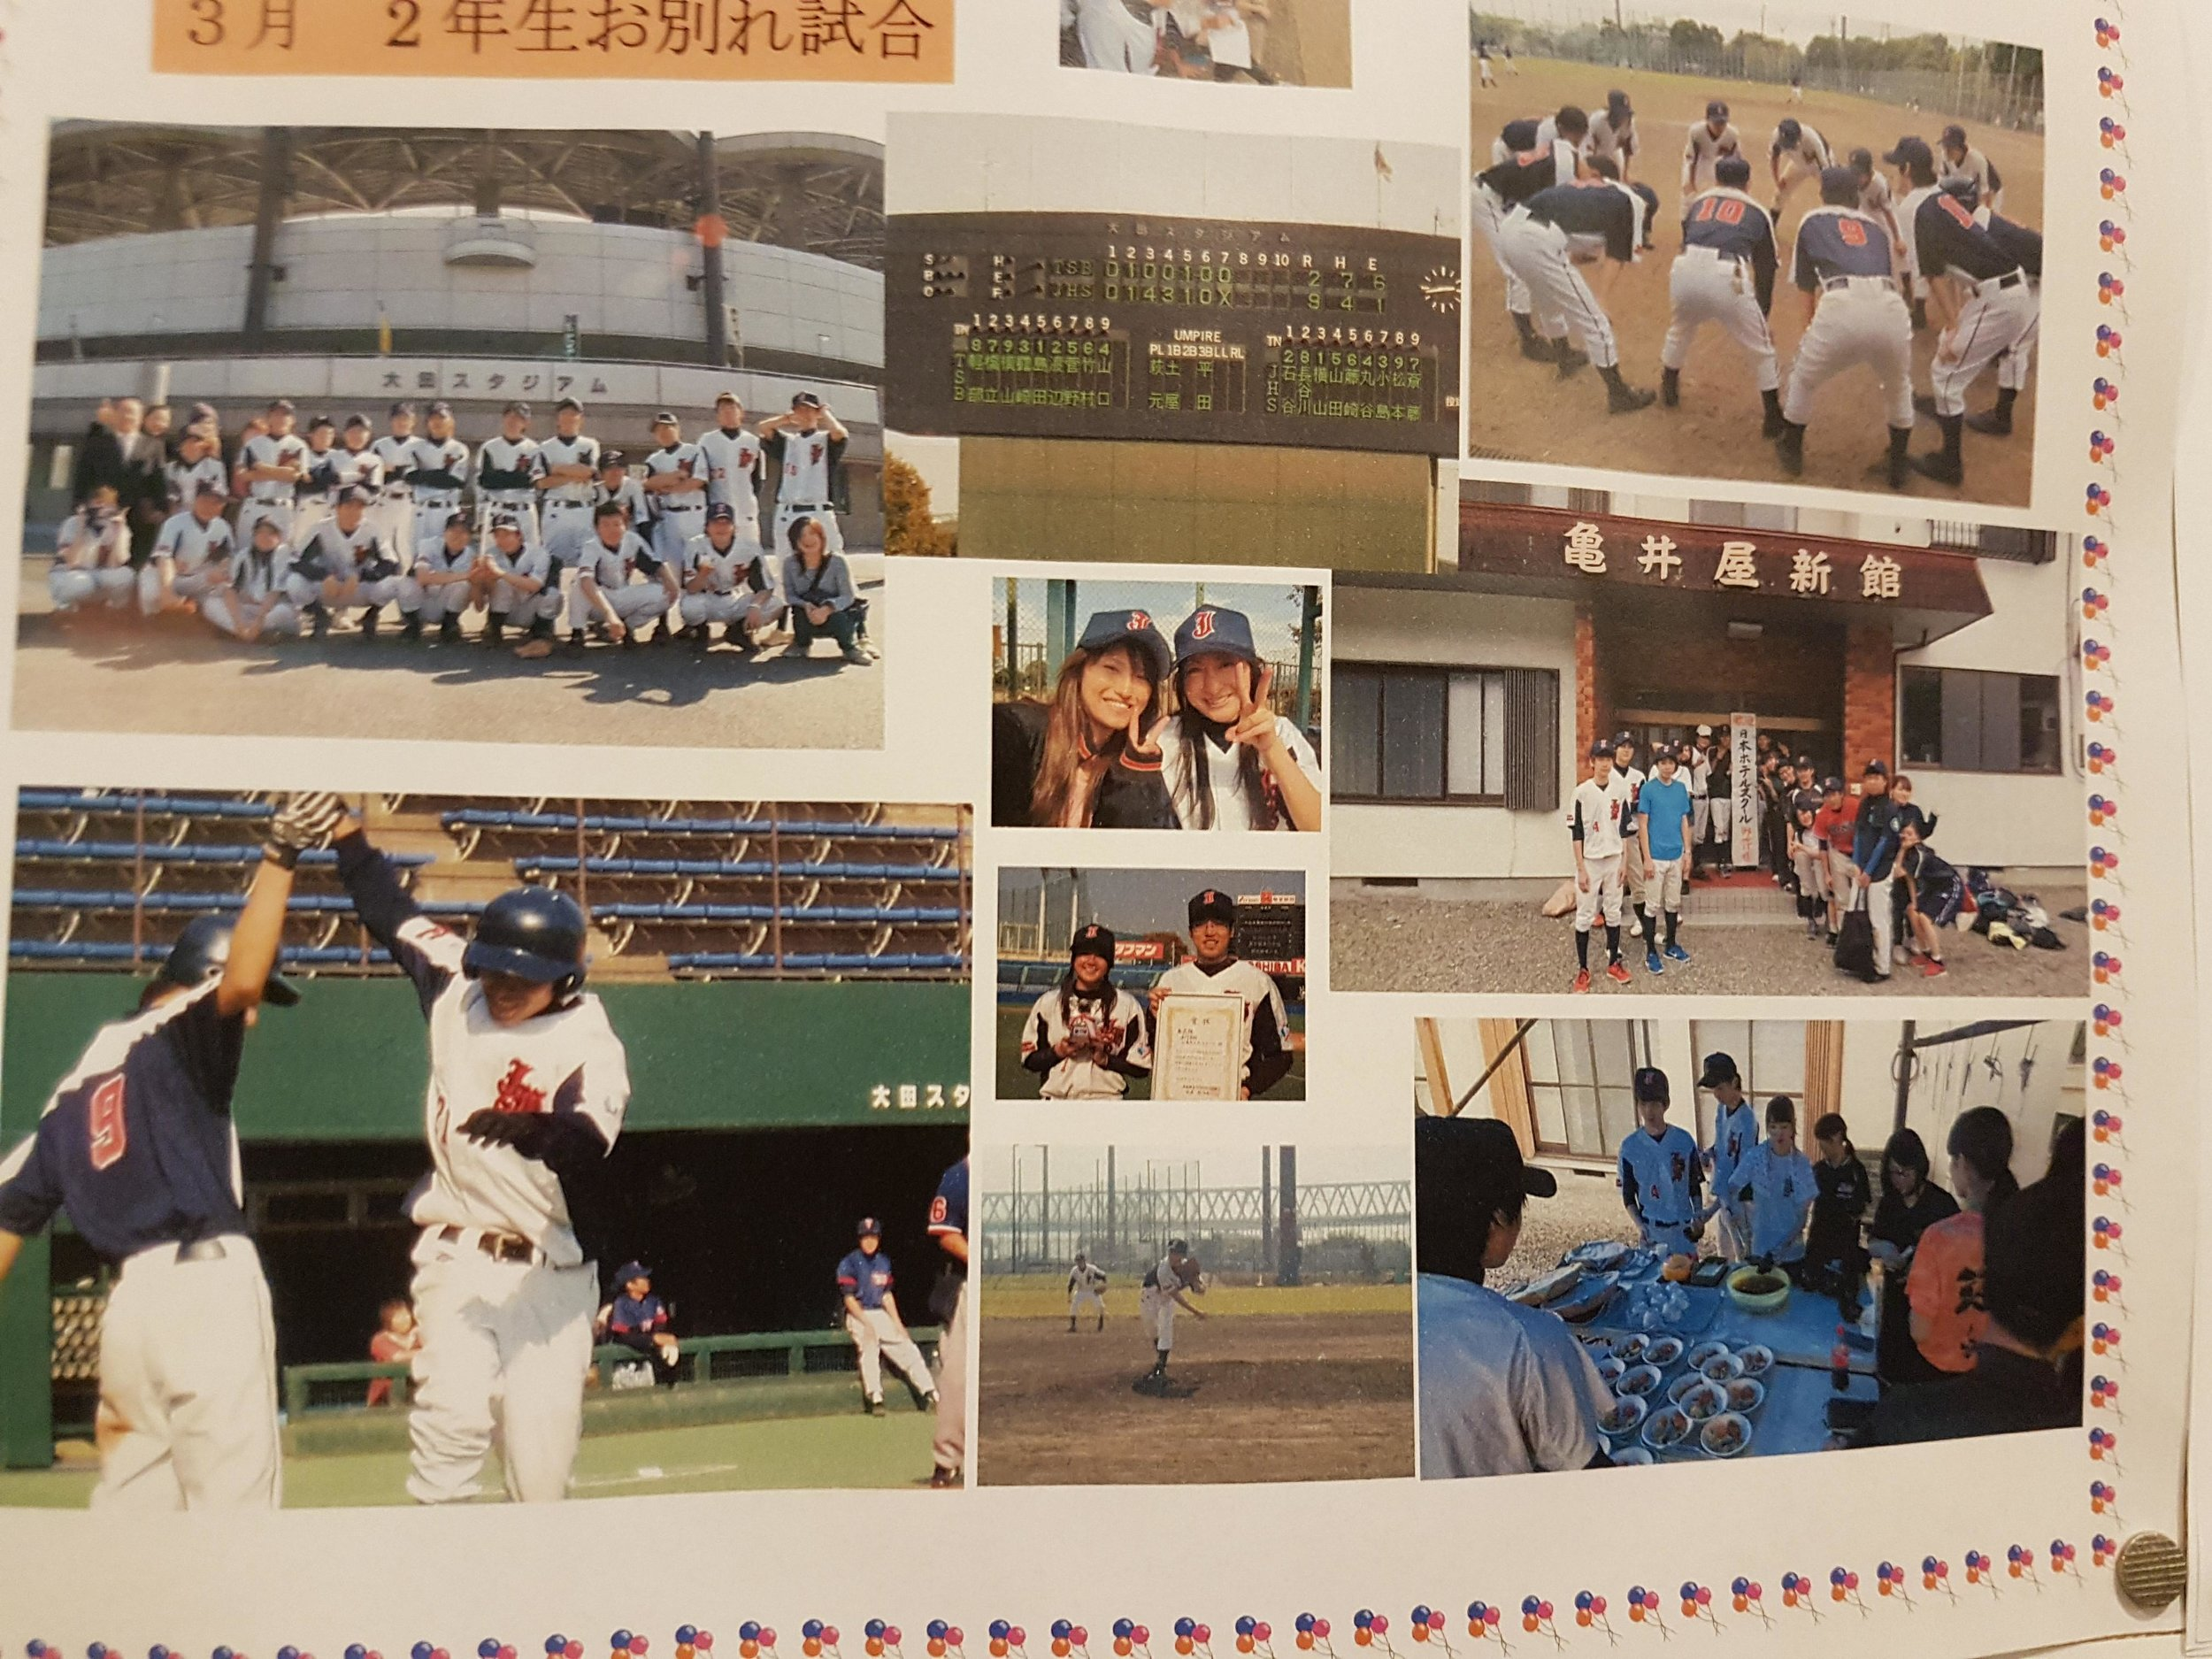 While at the school, you can enjoy fun sports clubs and events.